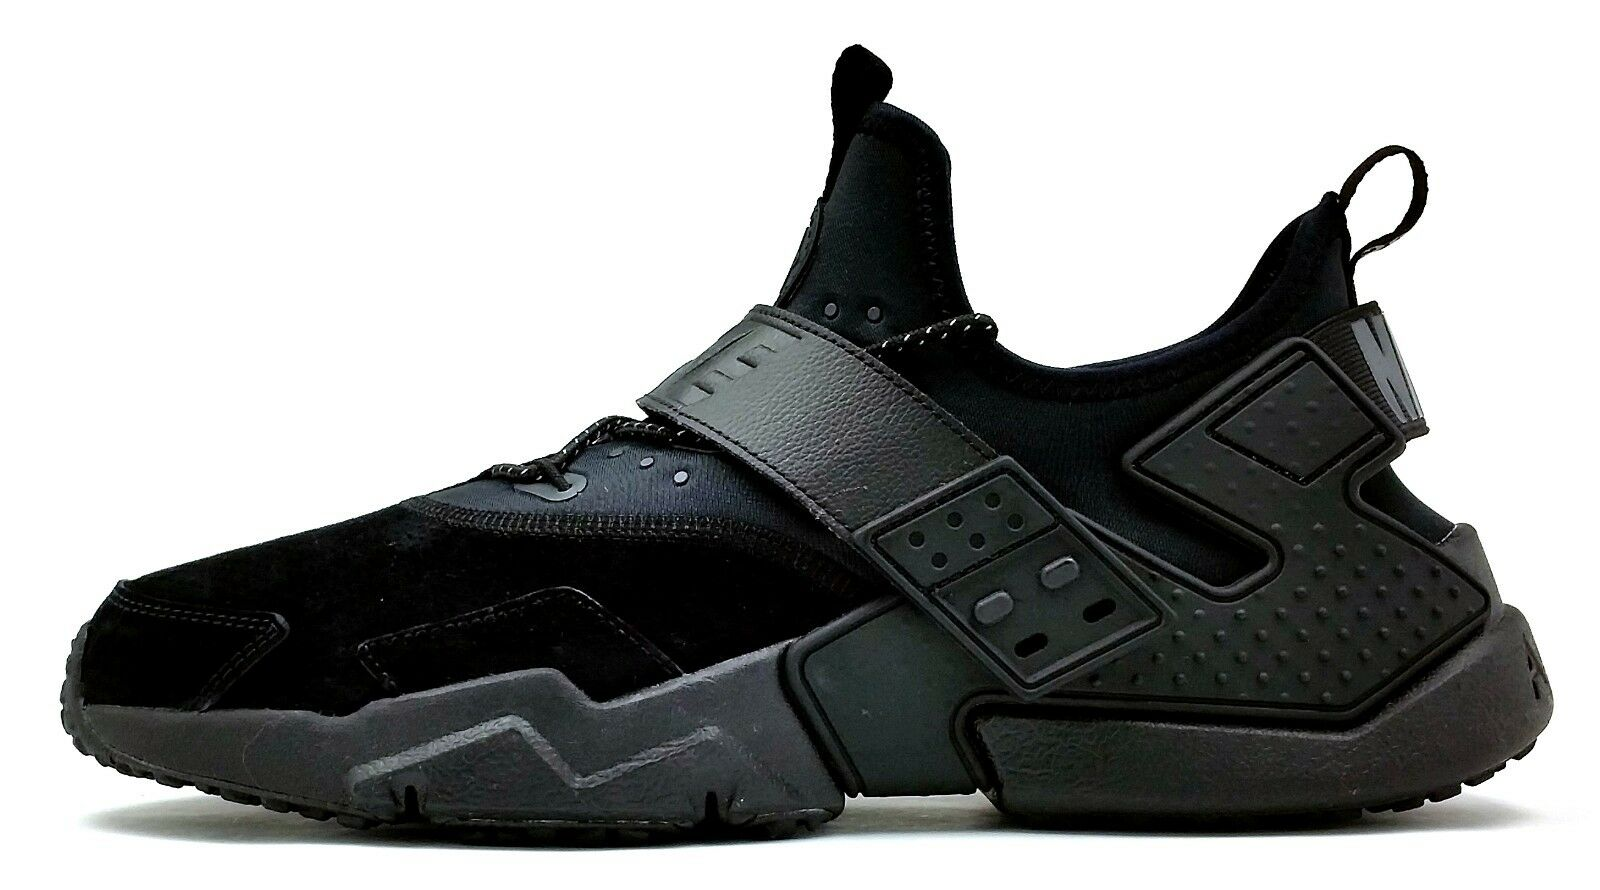 Nike Air Huarache Drift Premium NEW Men's Running Shoes Black AH7335 001